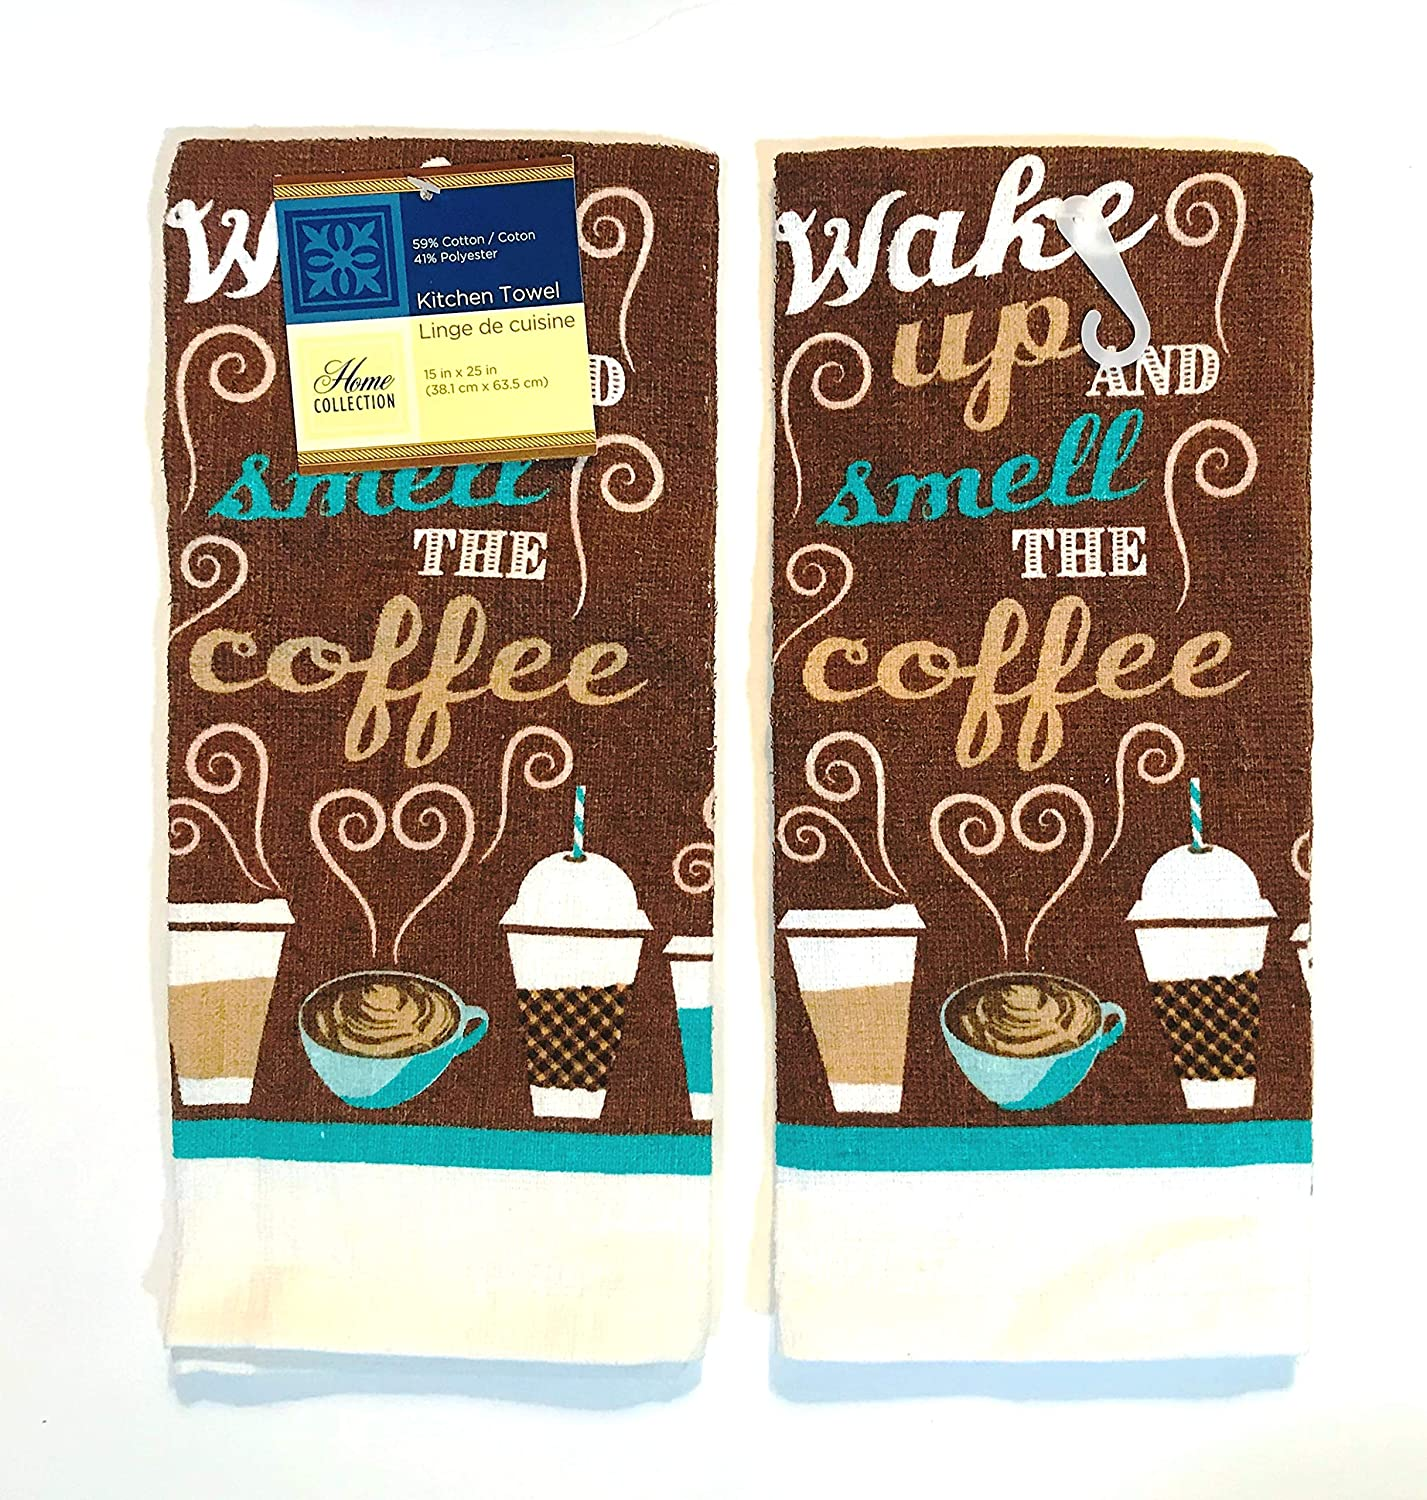 Home Collection 2 Coffee Theme Kitchen Towels (Wake Up and Smell The Coffee)